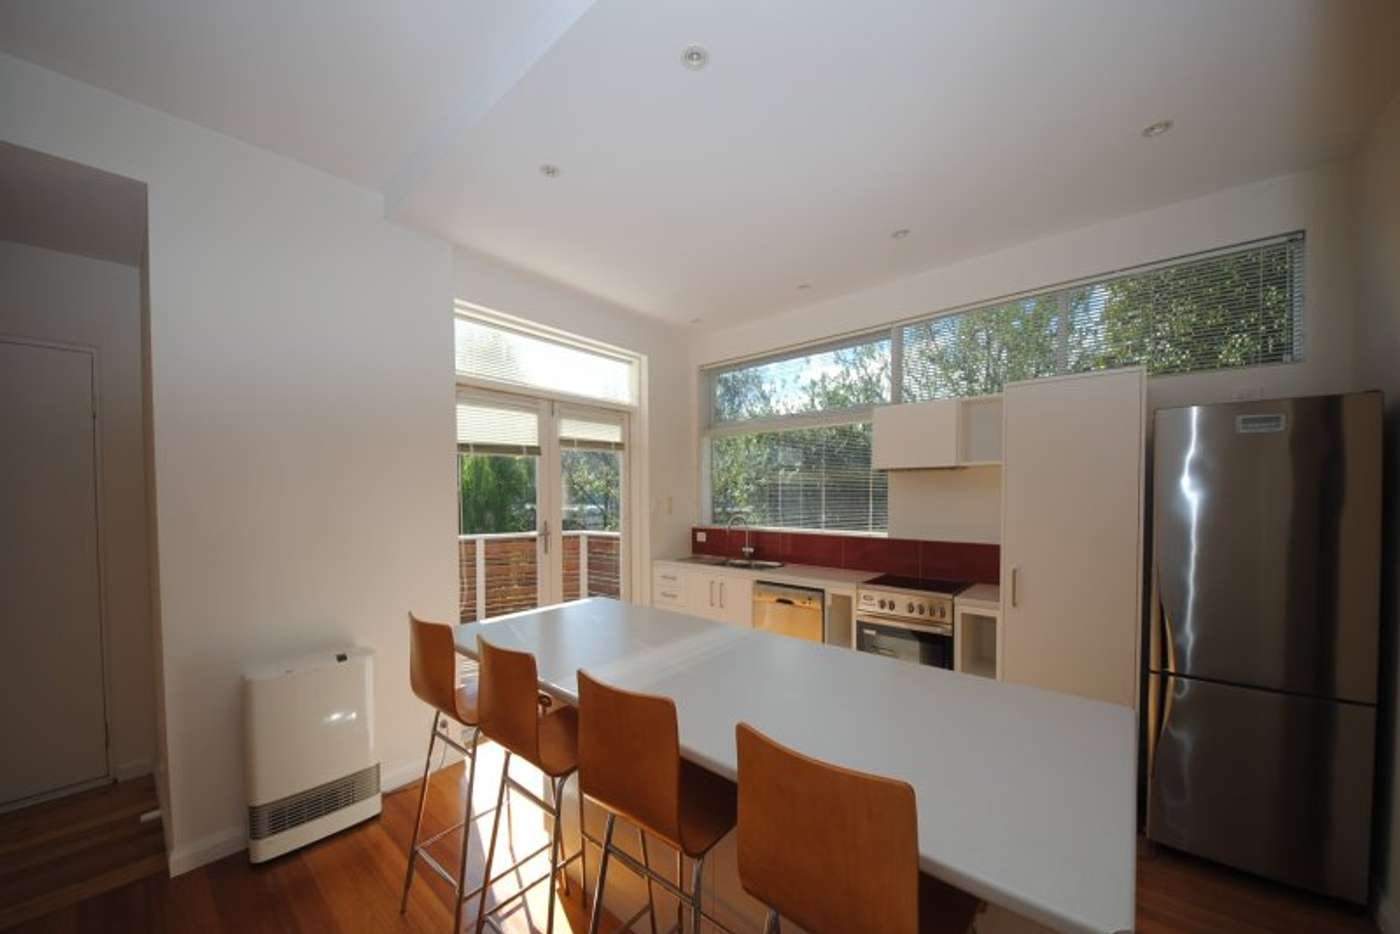 Main view of Homely house listing, 1 Lipscombe Avenue, Sandy Bay TAS 7005